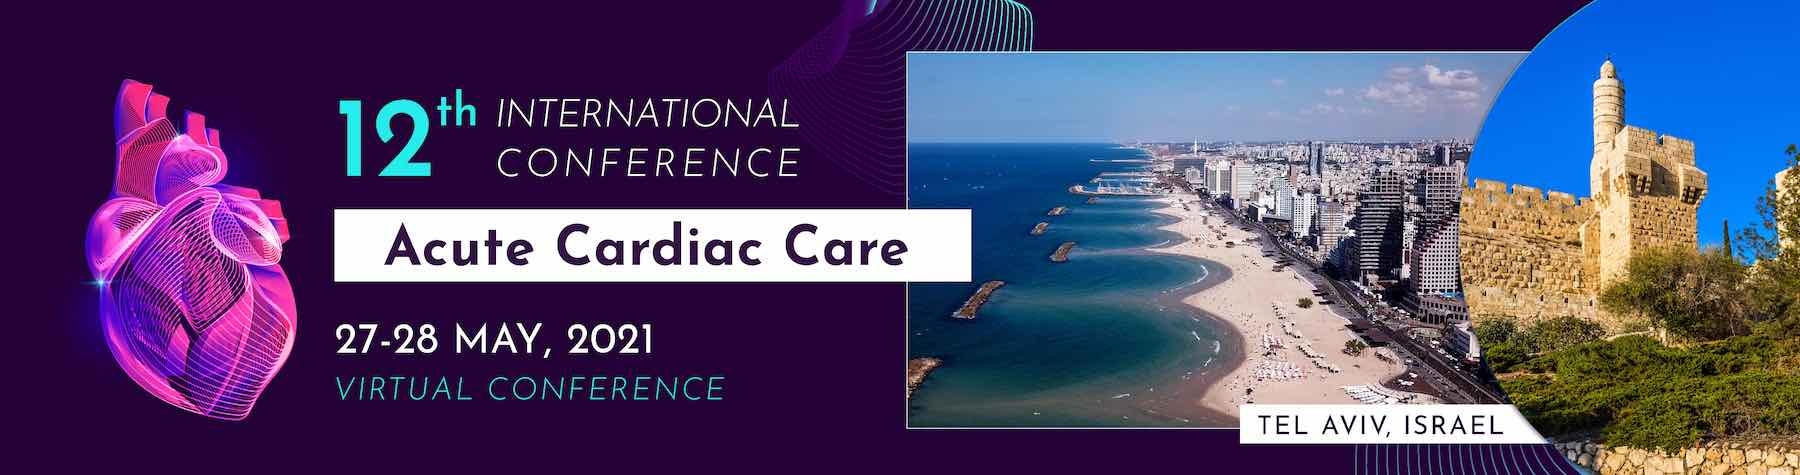 12th International Conference on Acute Cardiac Care – 2021